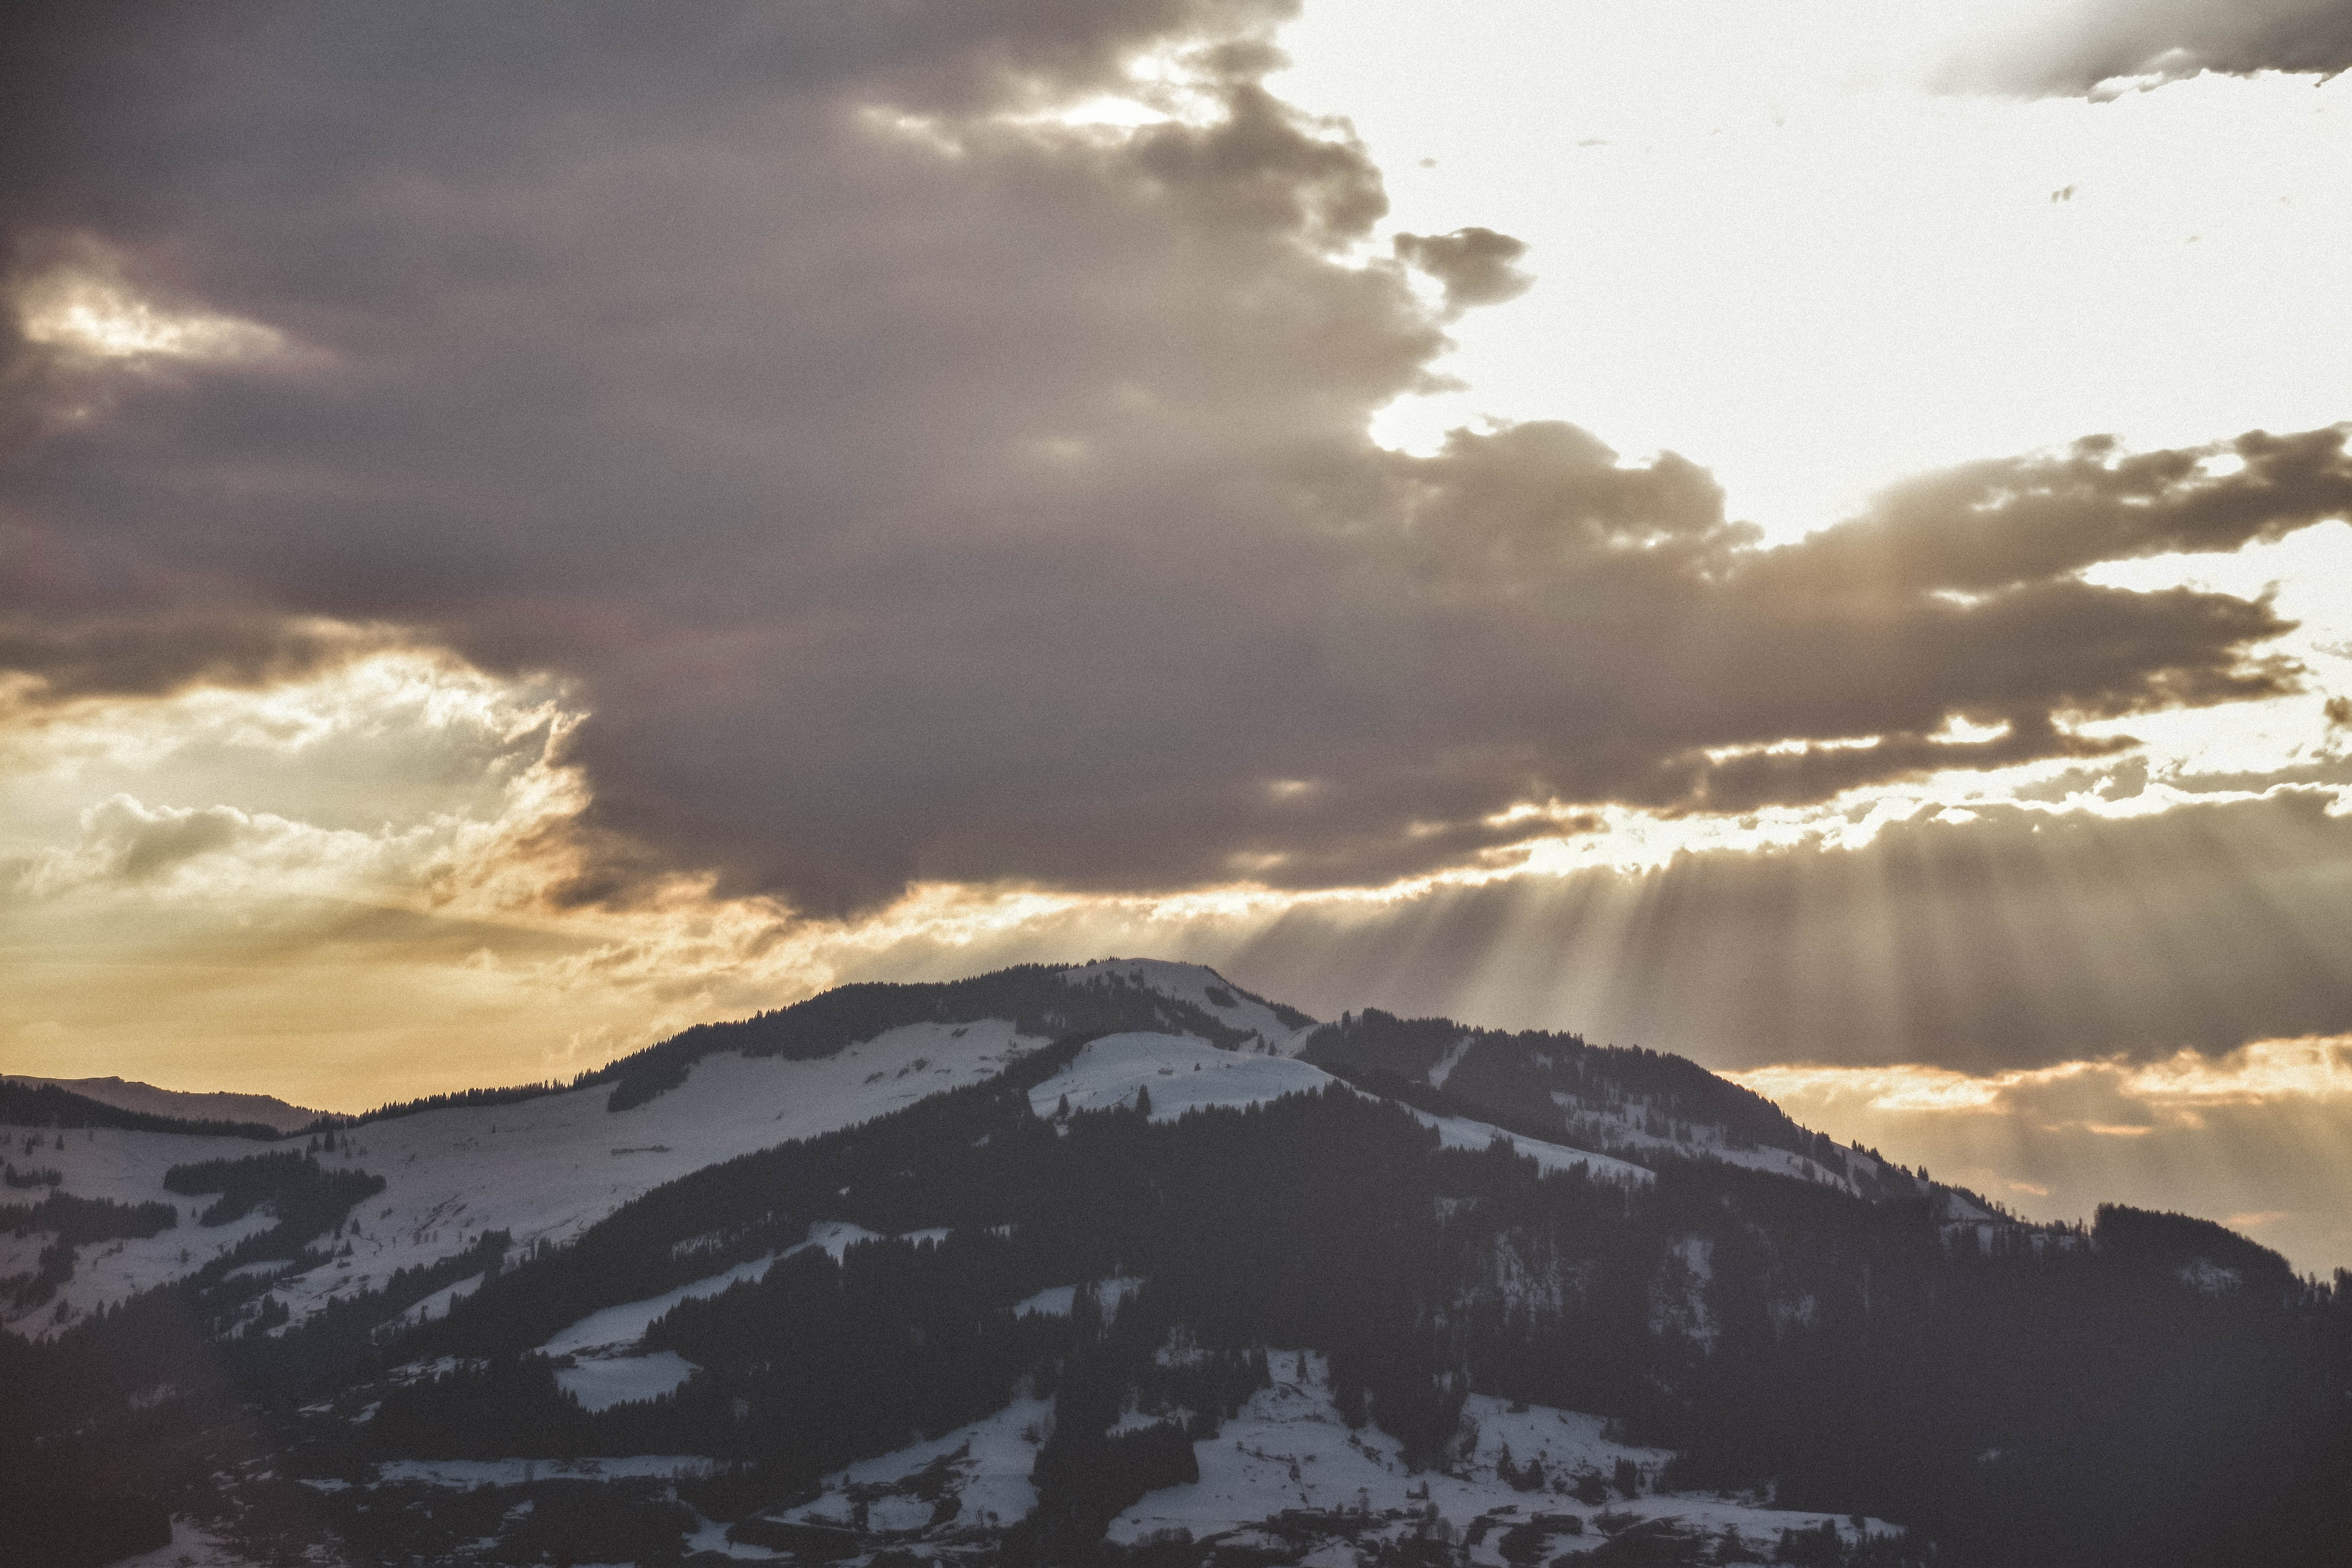 Sunrays Passing Through Clouds